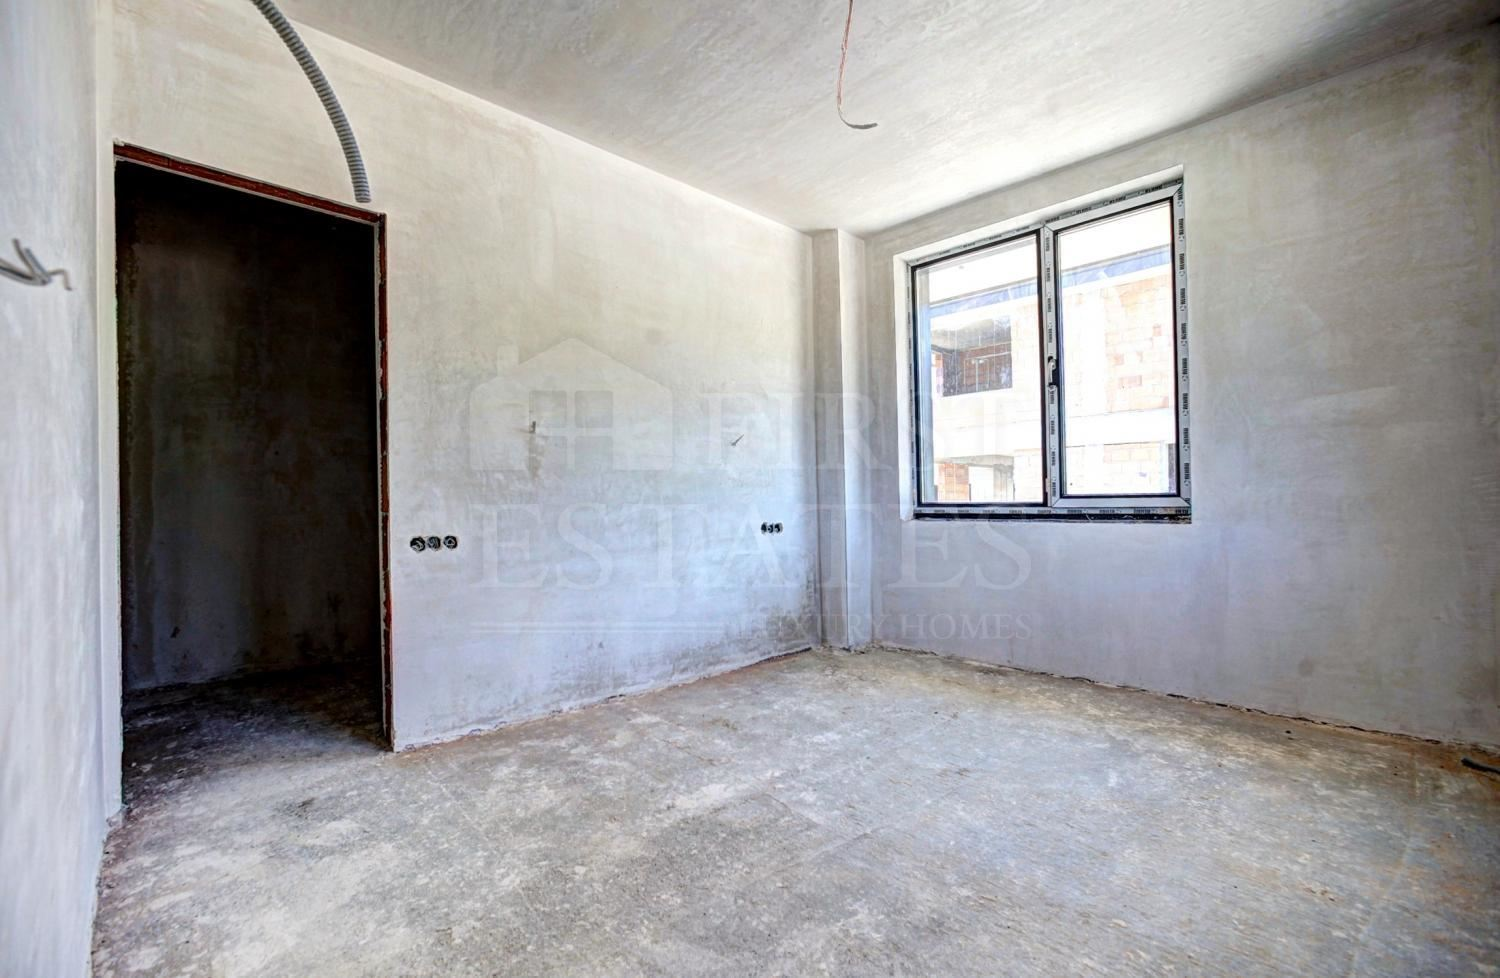 5 + bedroom house for sale